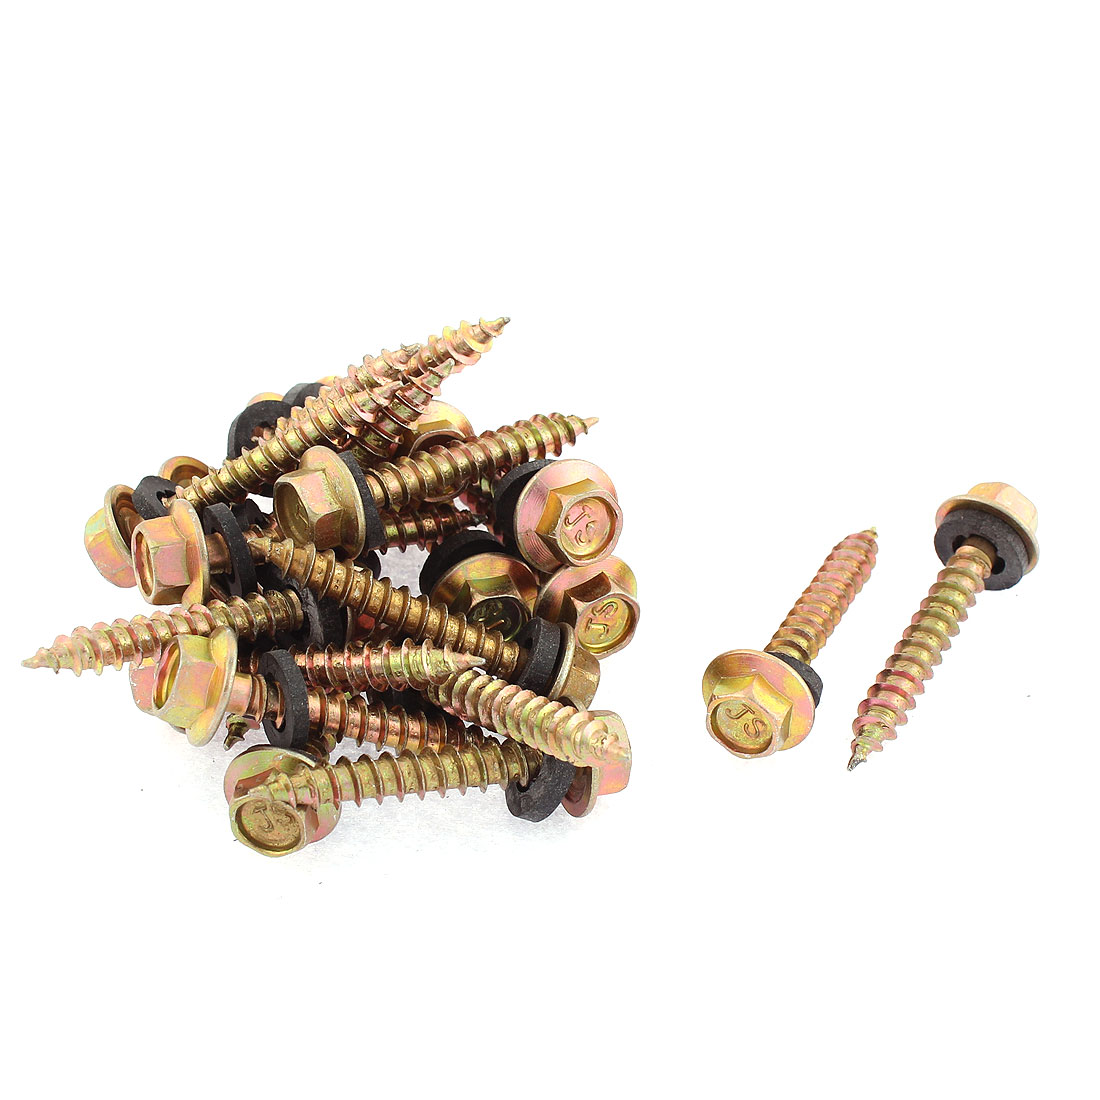 20Pcs M5 x 33mm Male Thread Hex Washer Head Self Tapping Screw Fastener 38mm Long